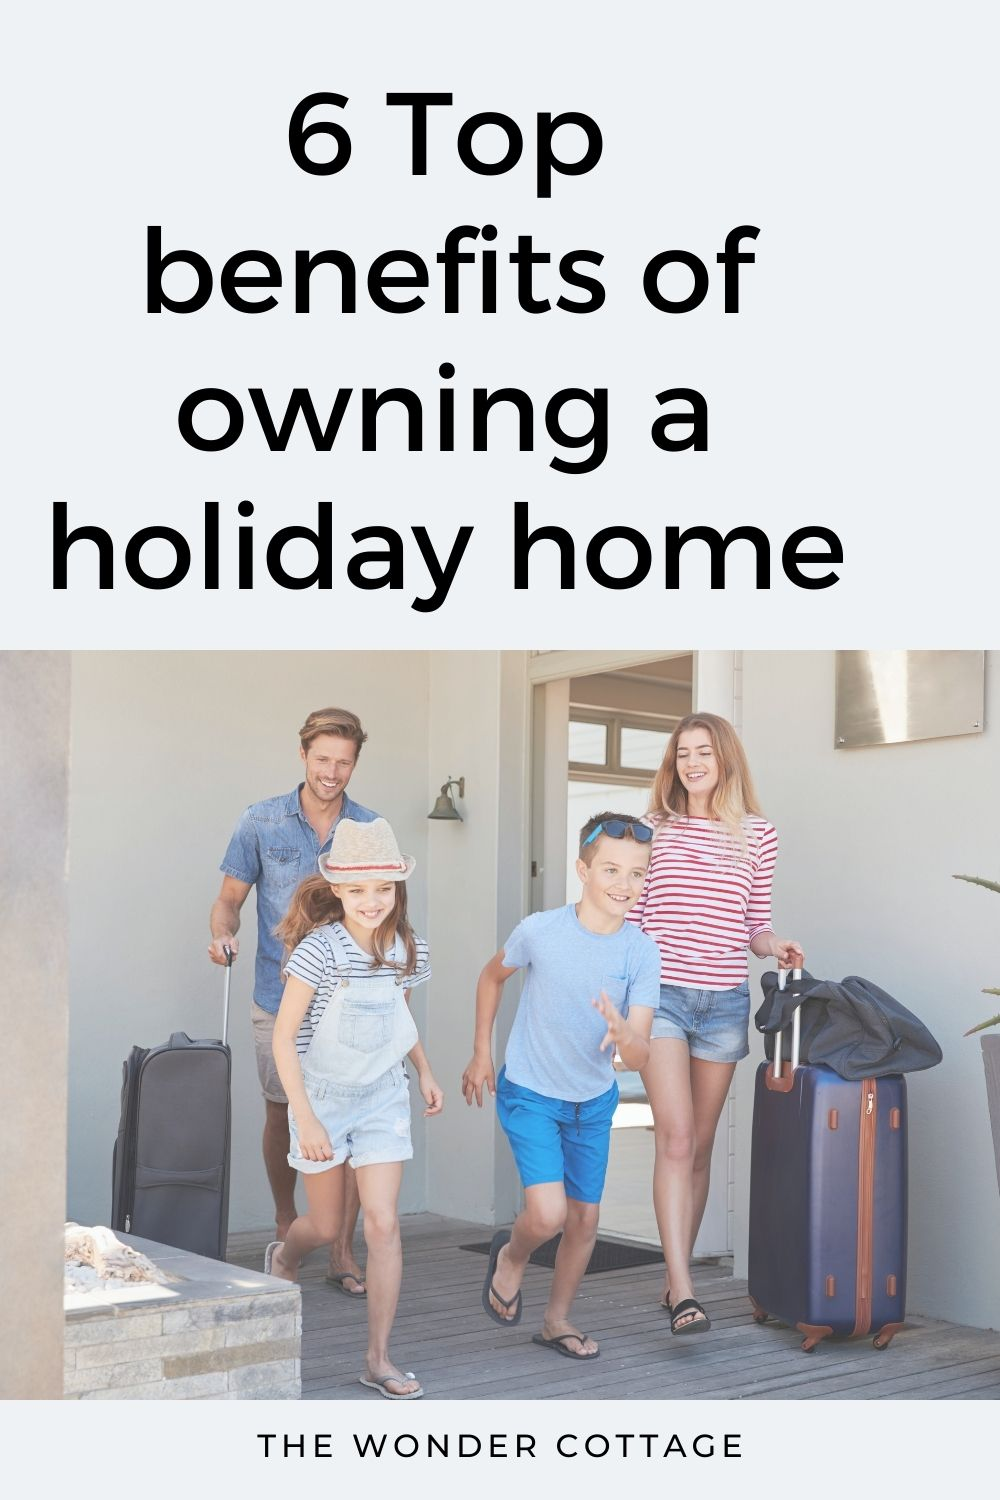 6 top benefits of owning a holiday home